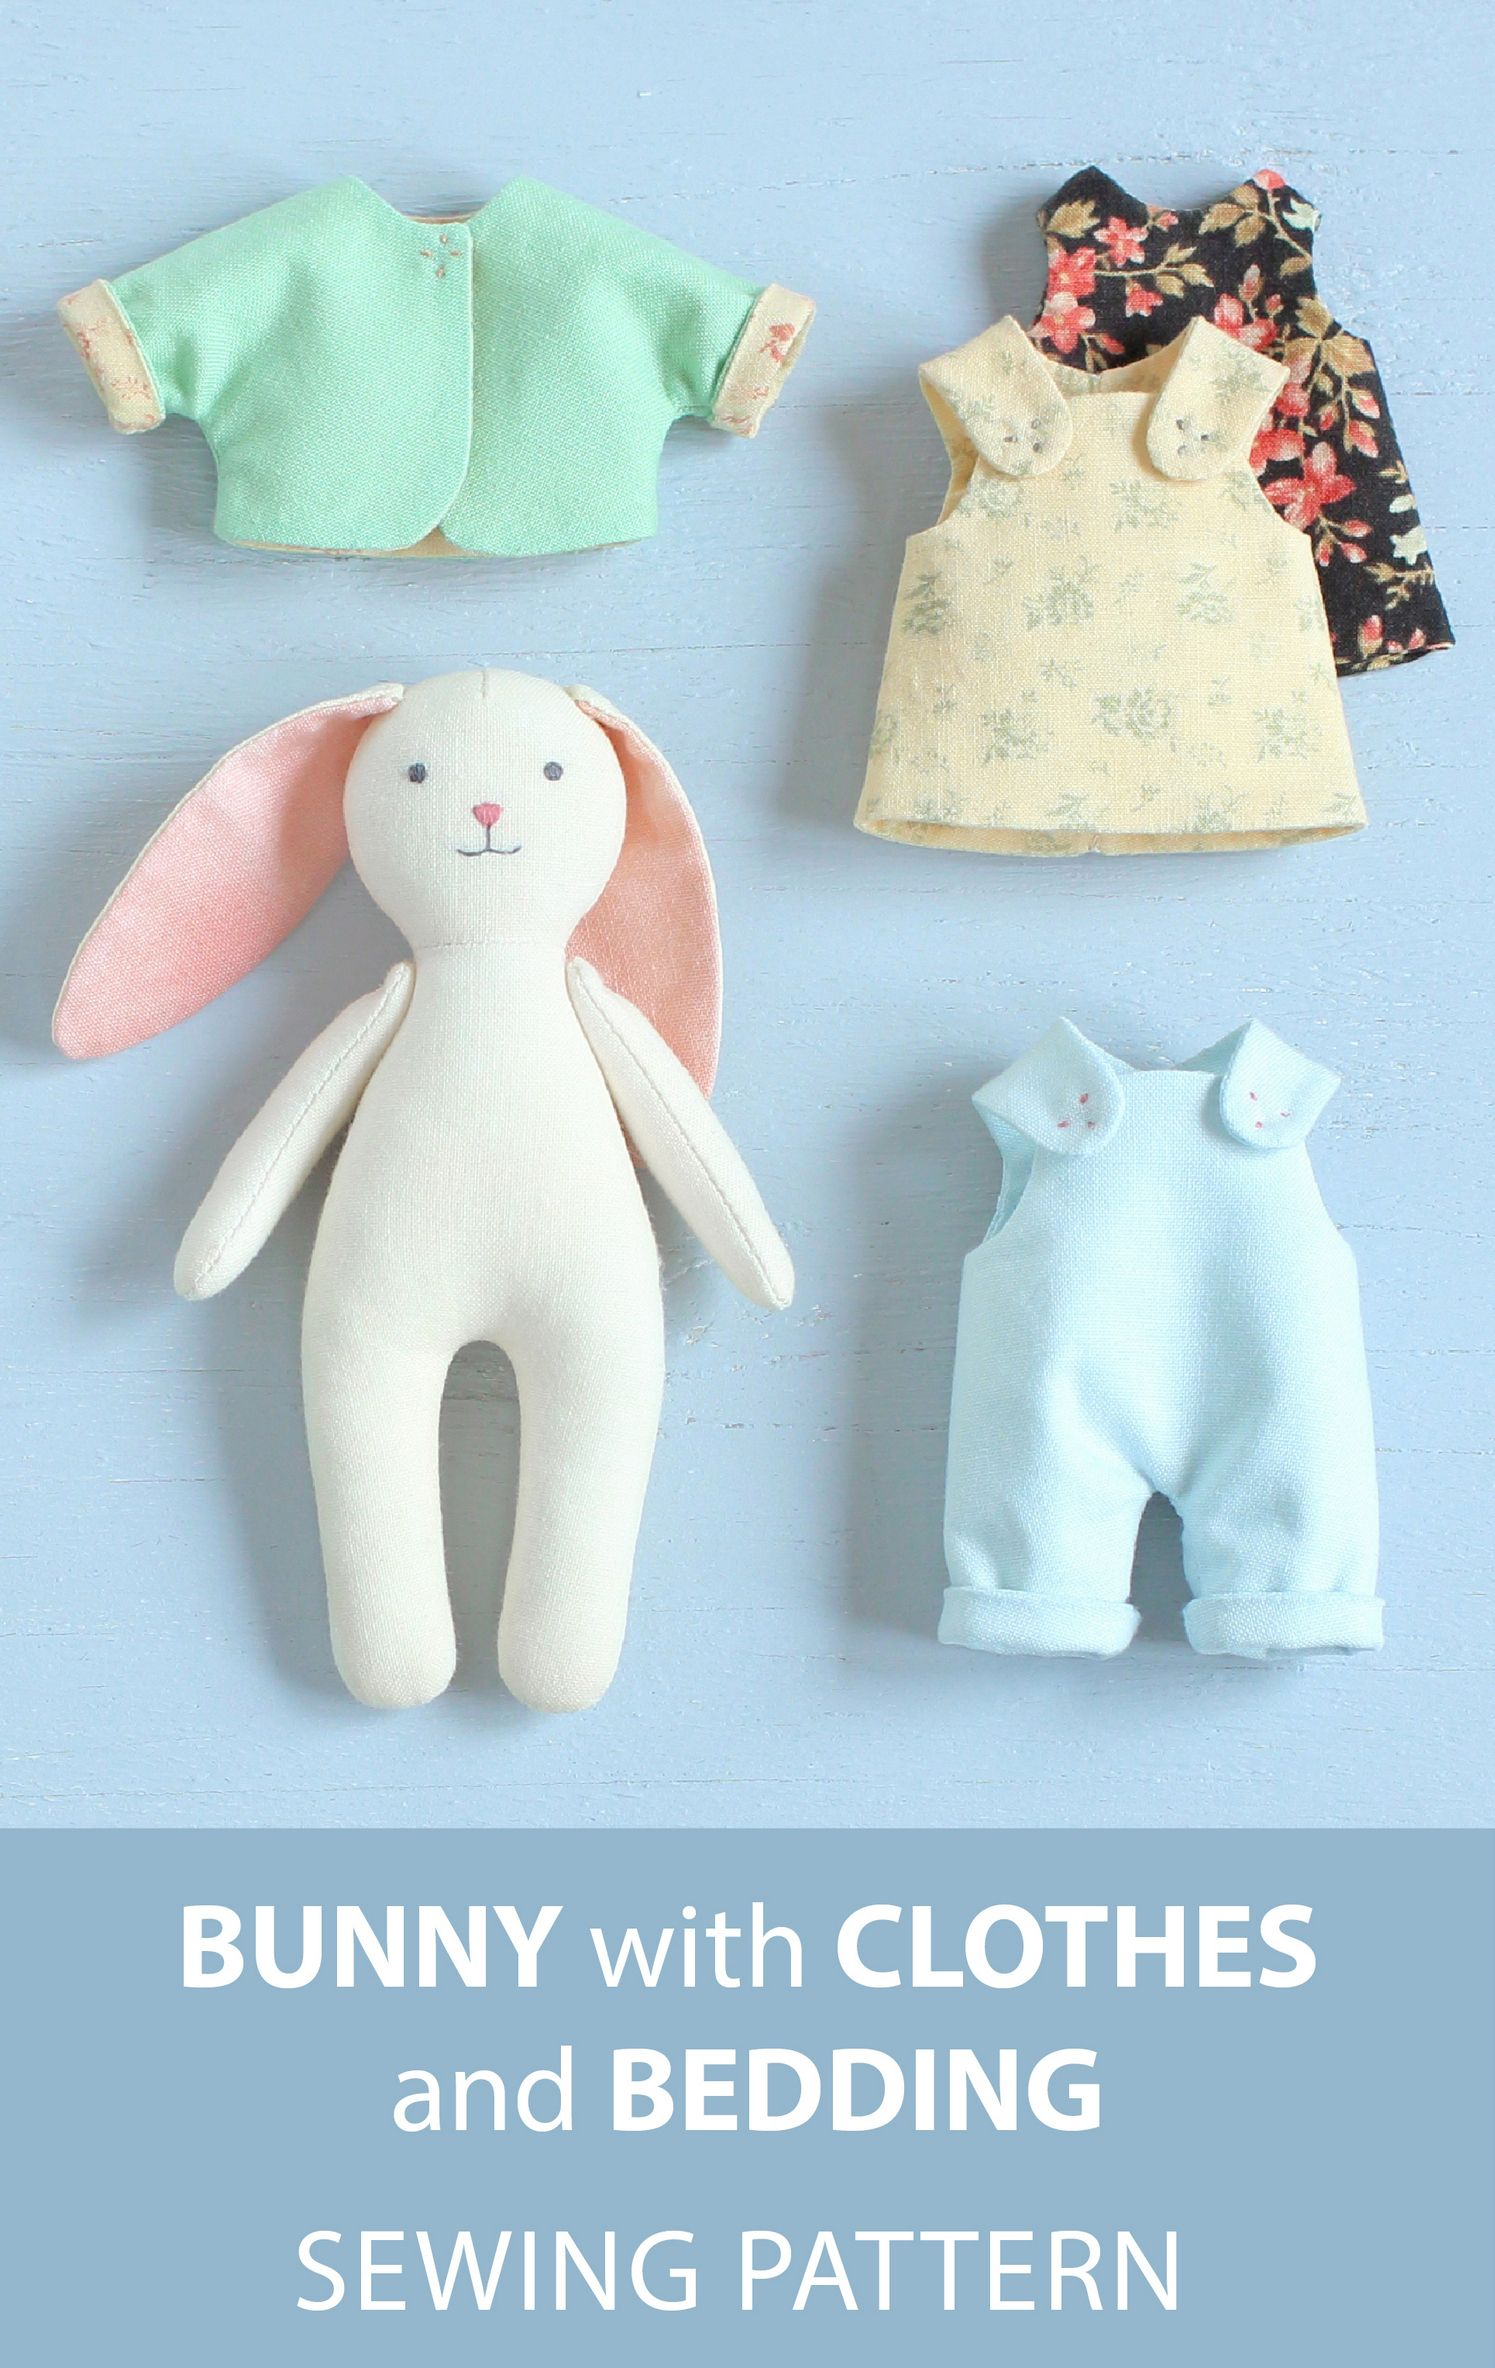 2 Pdf Mini Bunny With Set Of Clothes Basket With Bedding Sewing